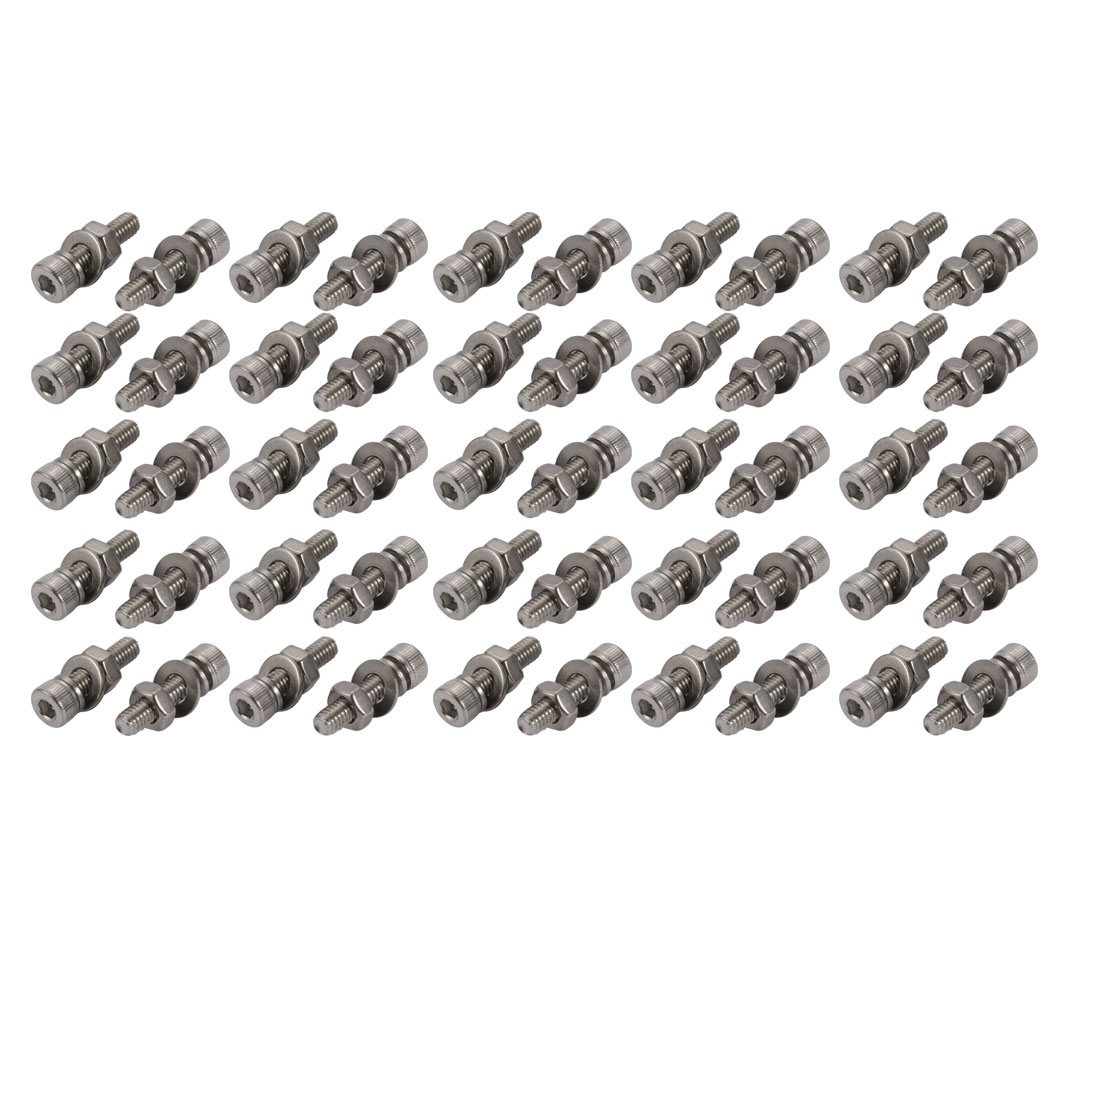 50pcs M4x16mm 304 Stainless Steel Knurled Hex Socket Head Bolts w Nut Washer